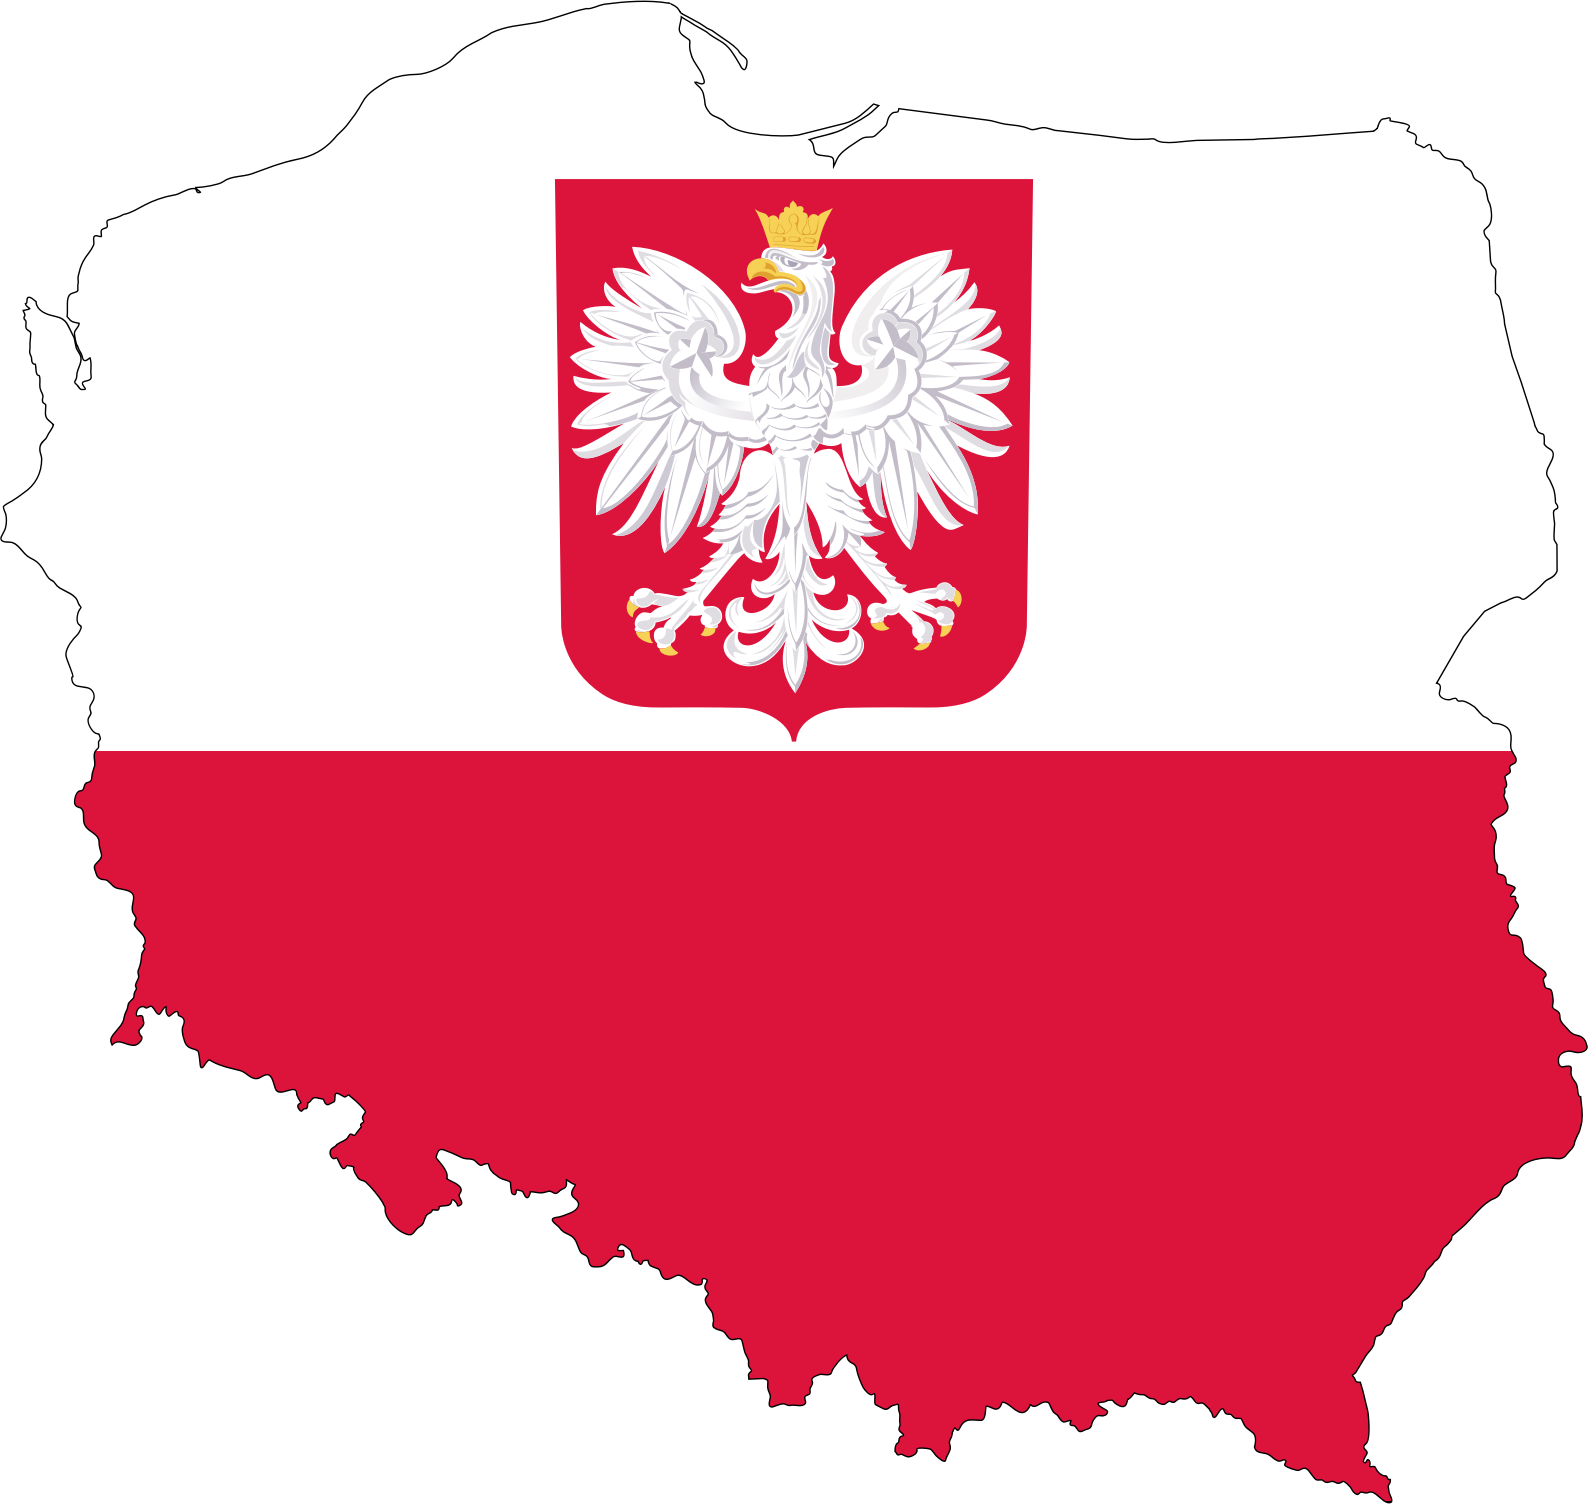 Poland Map Flag With Coat Of Arms by GDJ